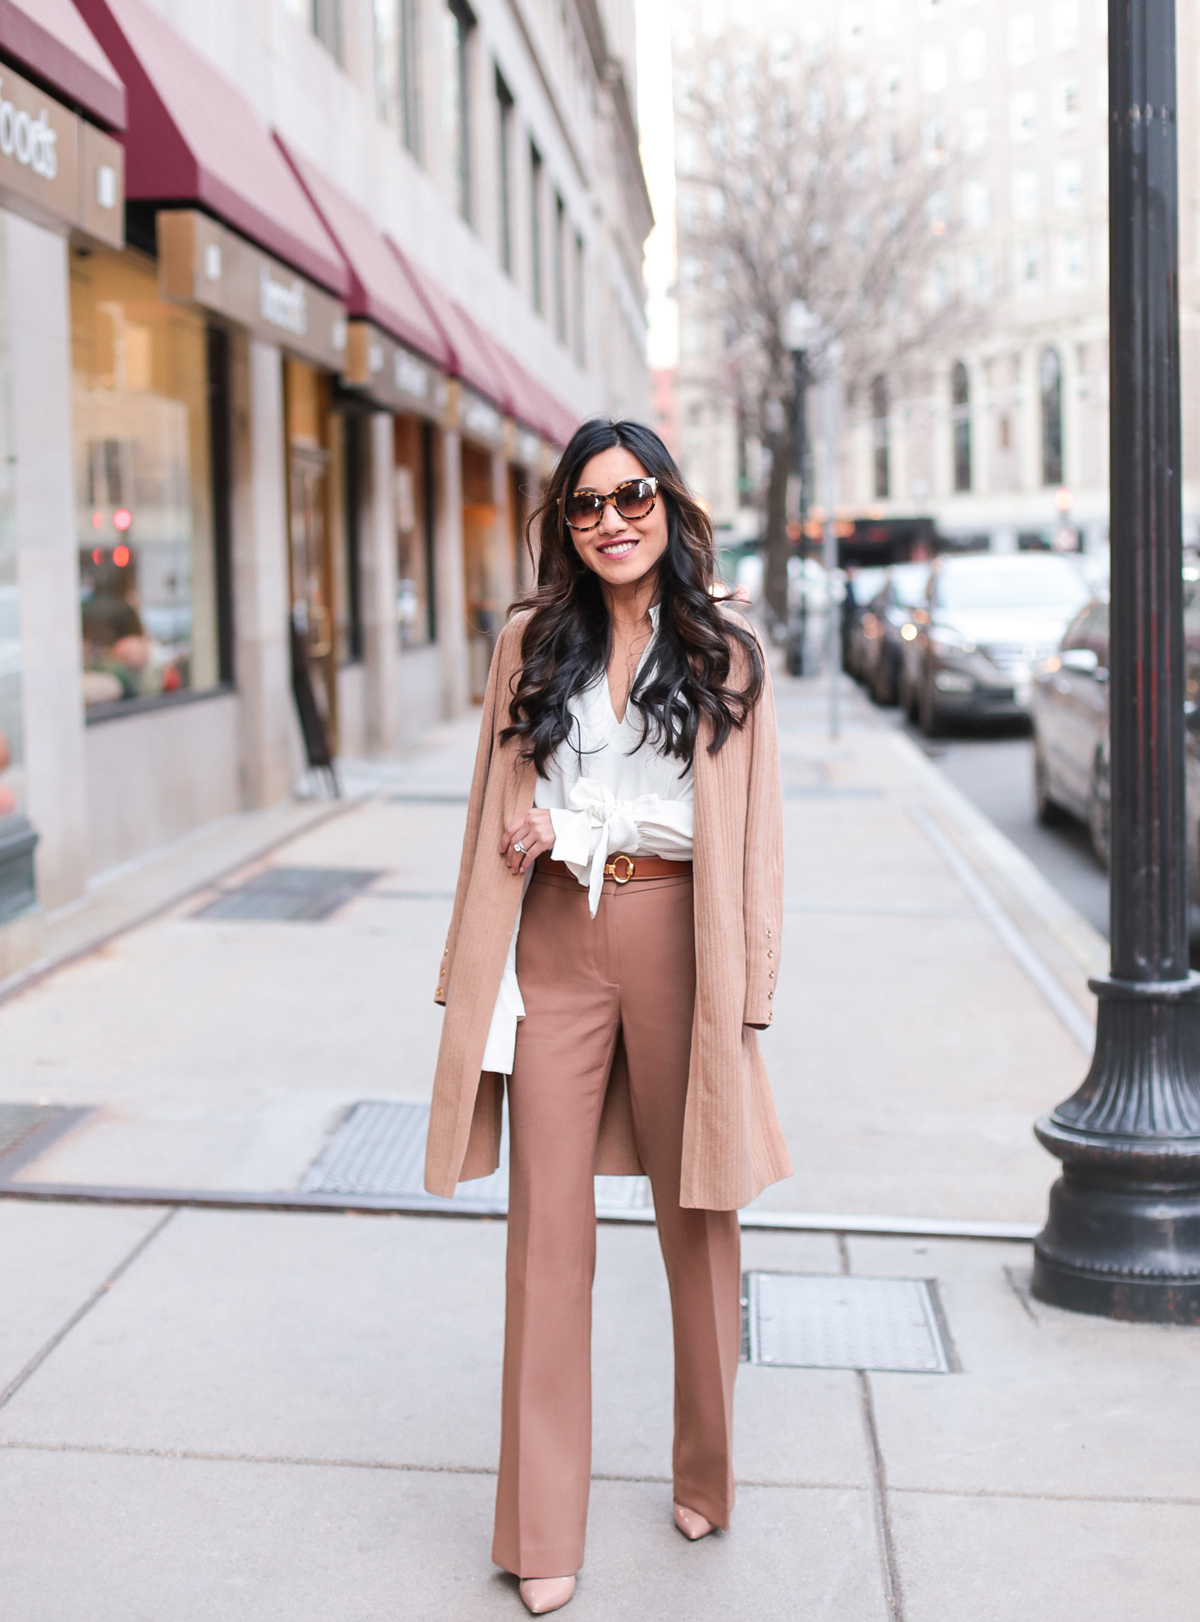 Winter Workwear // Long layers + bow sleeve blouse - Extra Petite